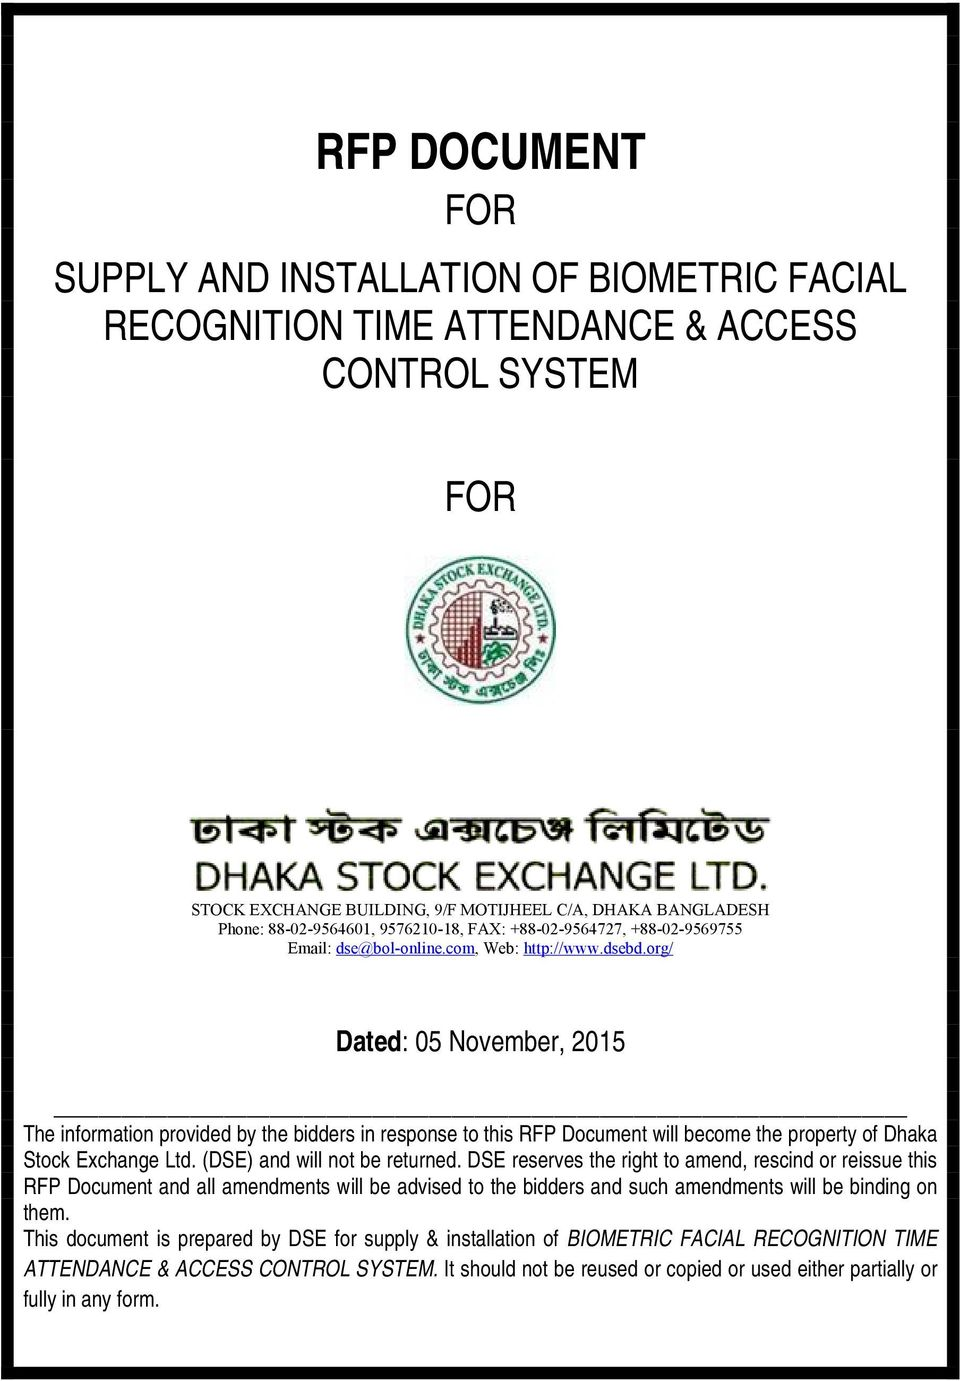 org/ Dated: 05 November, 2015 The information provided by the bidders in response to this RFP Document will become the property of Dhaka Stock Exchange Ltd. (DSE) and will not be returned.